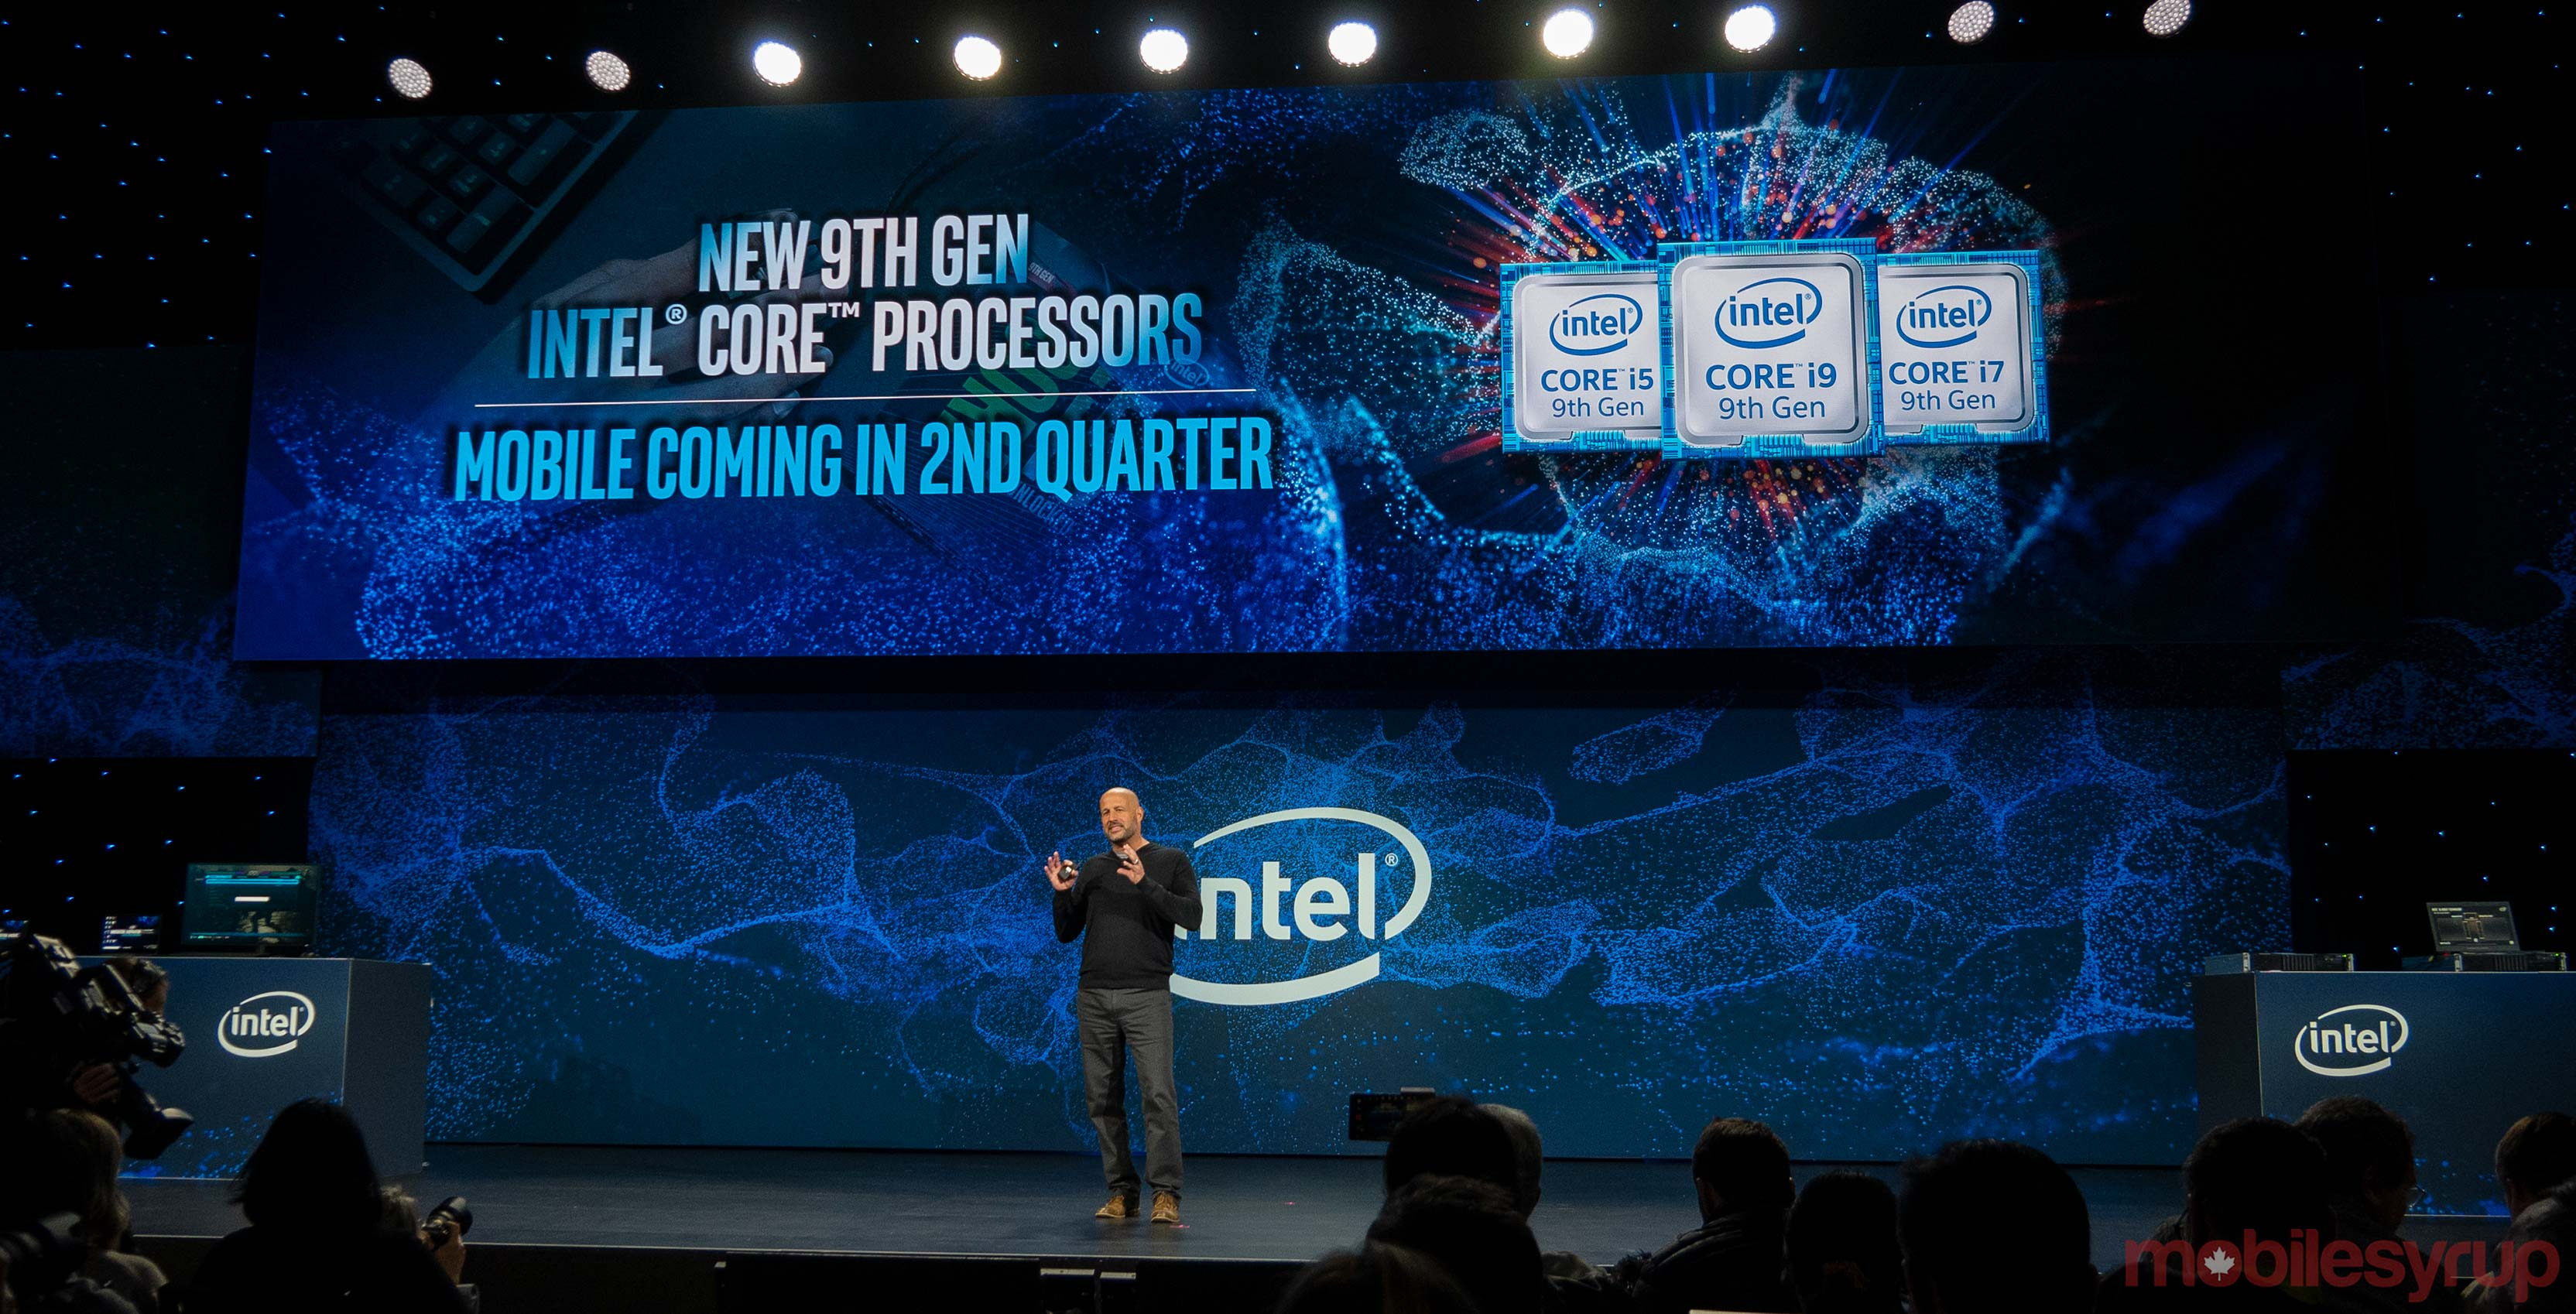 Intel's first 10nm Ice Lake CPUs are finally coming later this year